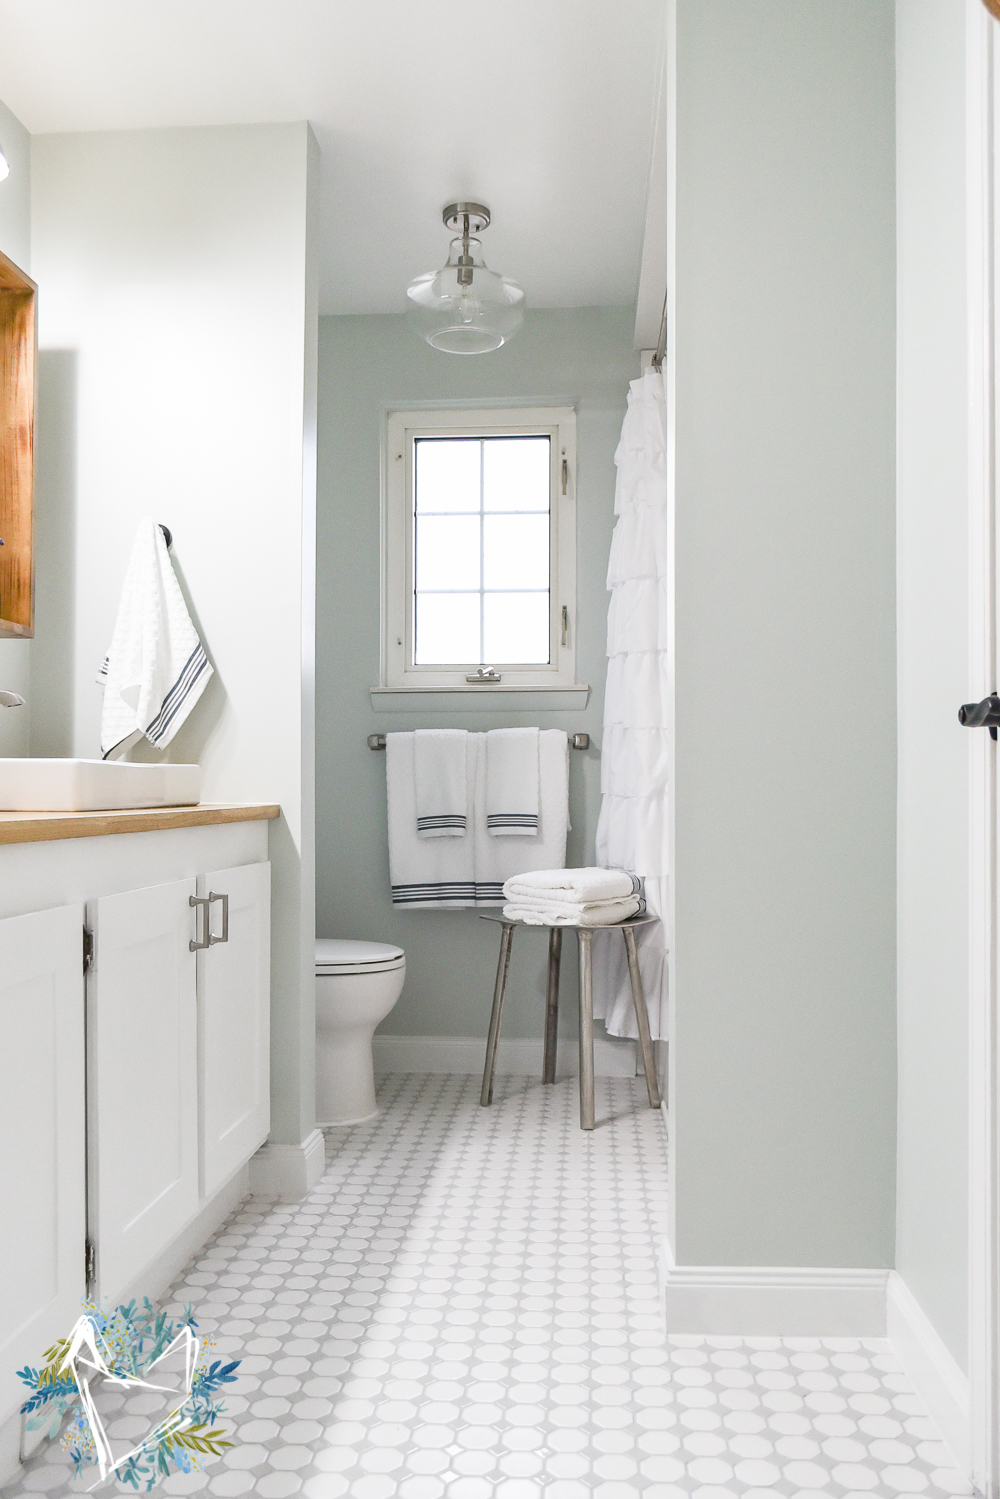 These Tips For Renovating A Bathroom Will Save You Thousands